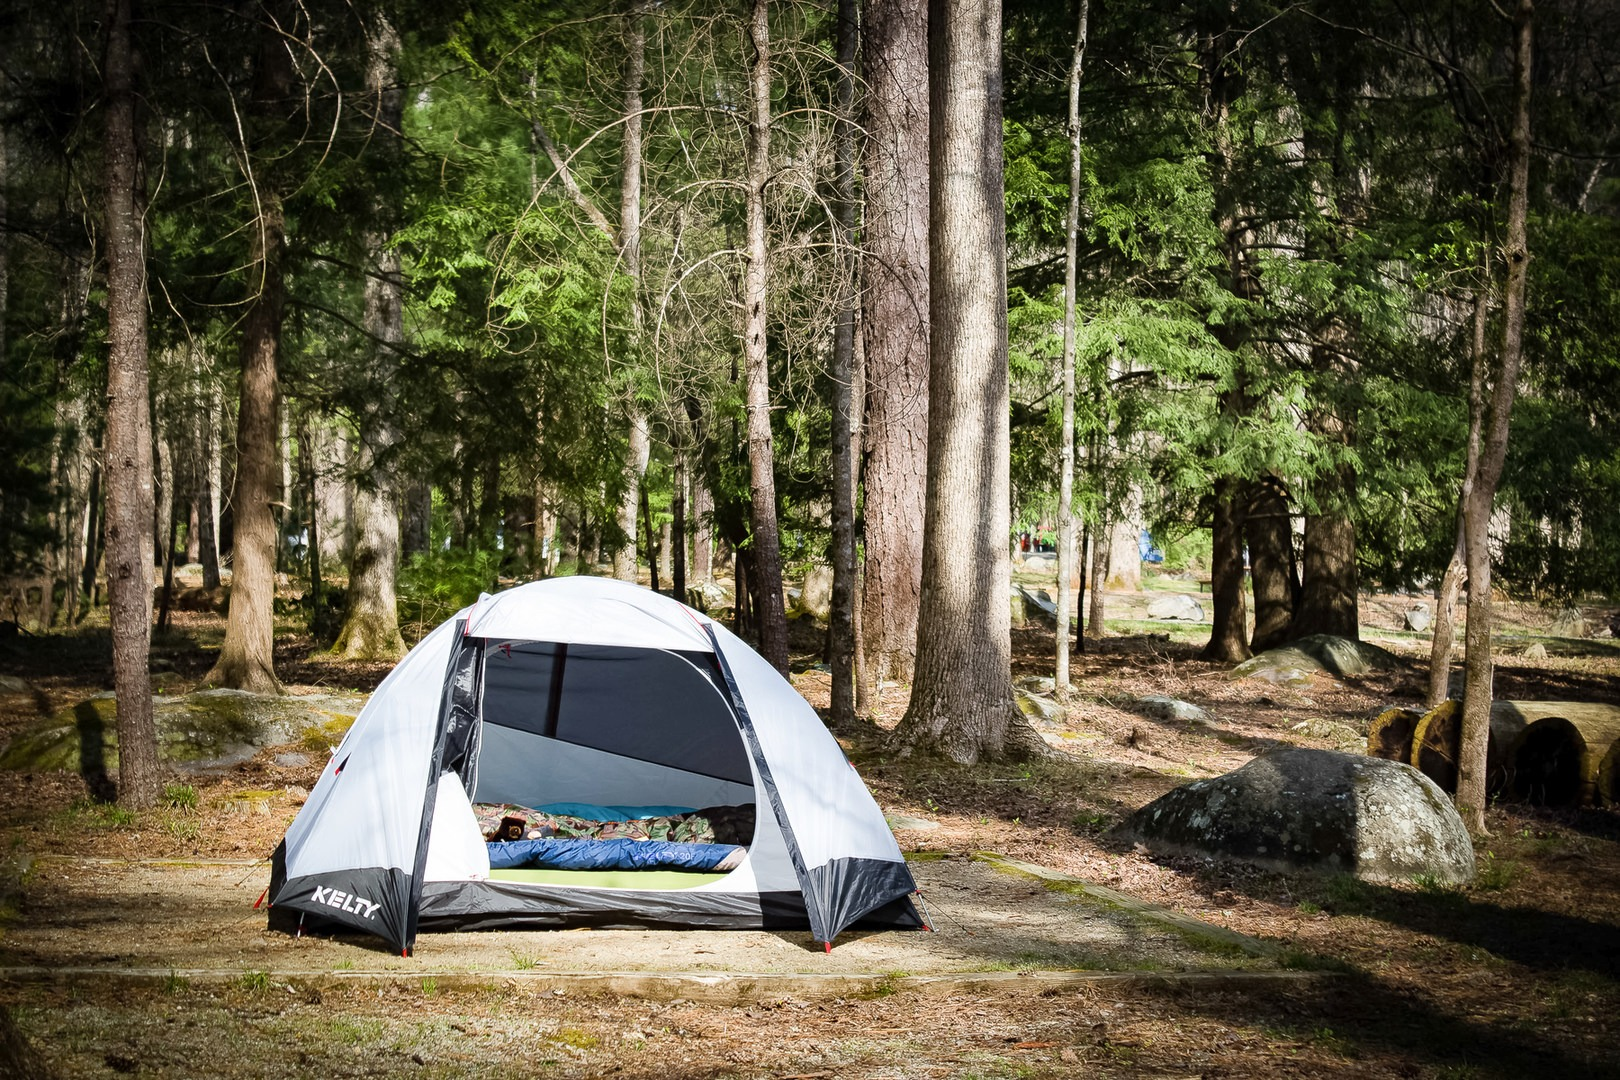 Campsites In Cades Cove Offer Solitude A Family Friendly Weekend Great Smoky